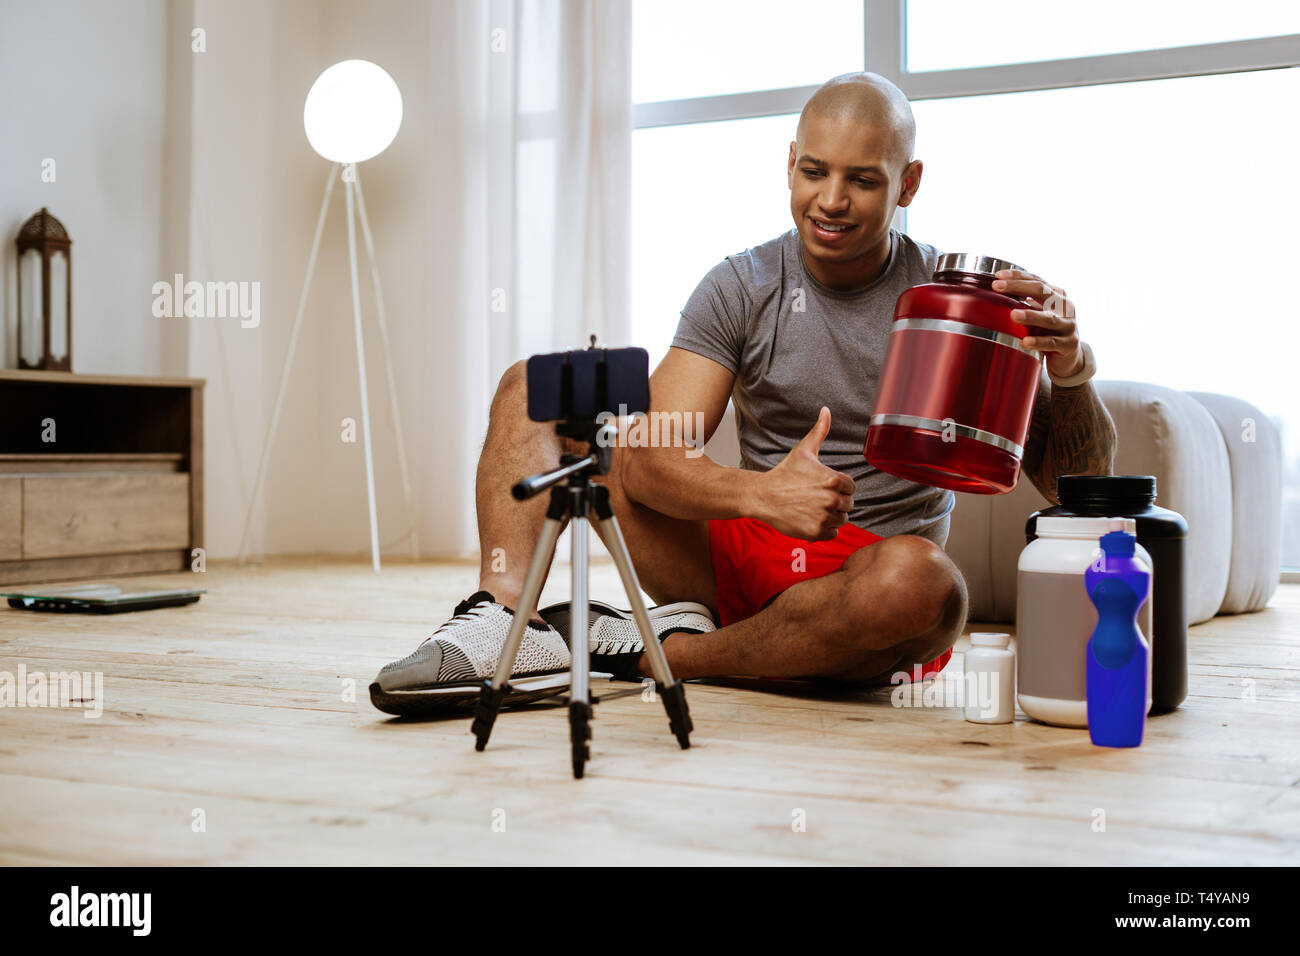 Sportsman sitting on the floor filming blog about dietary protein - Stock Image